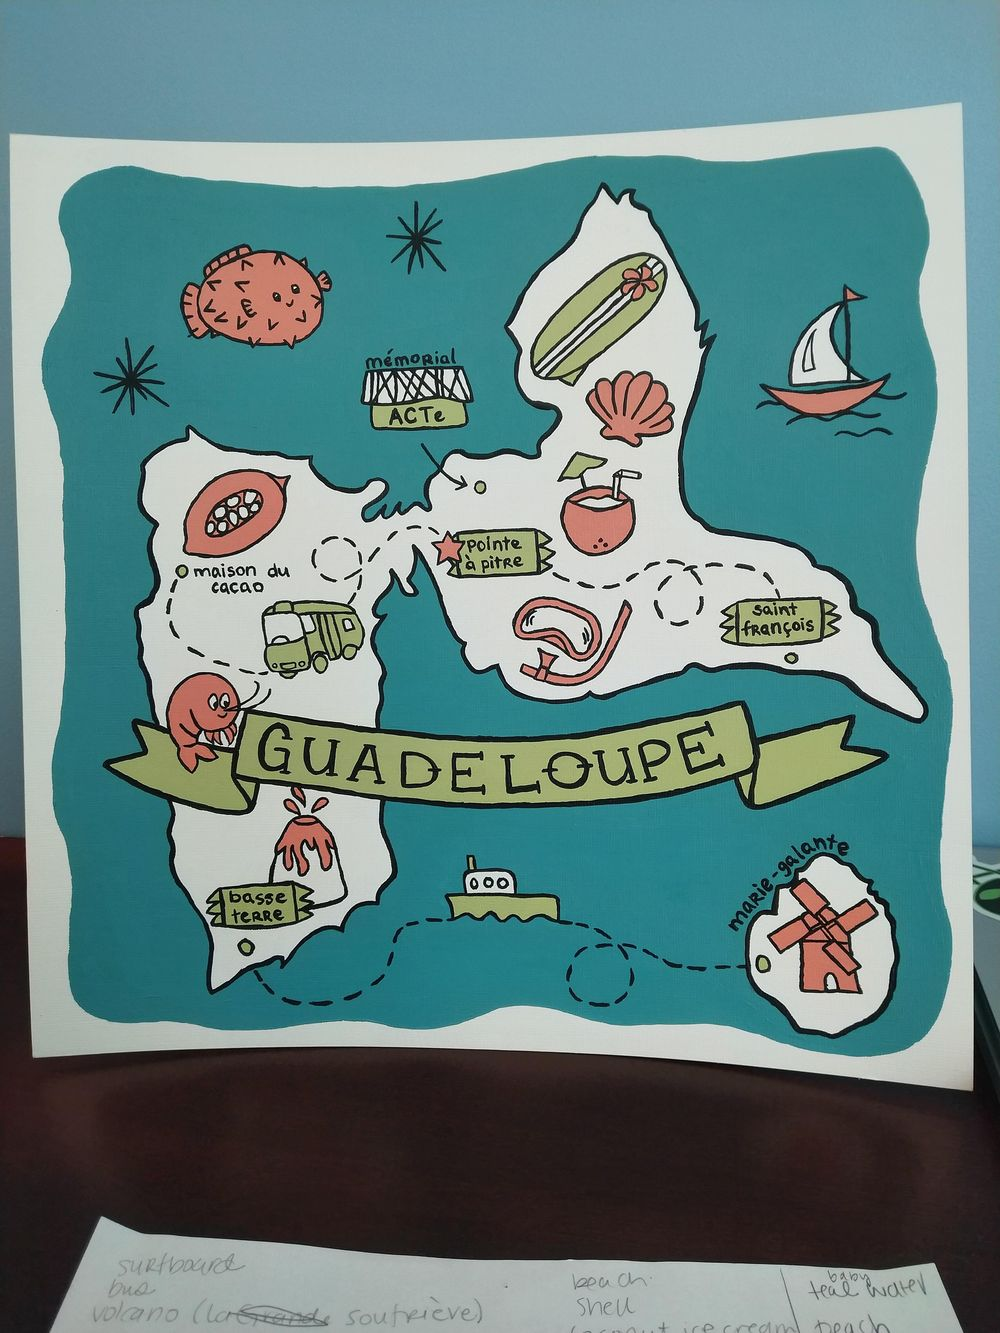 Guadeloupe - image 1 - student project